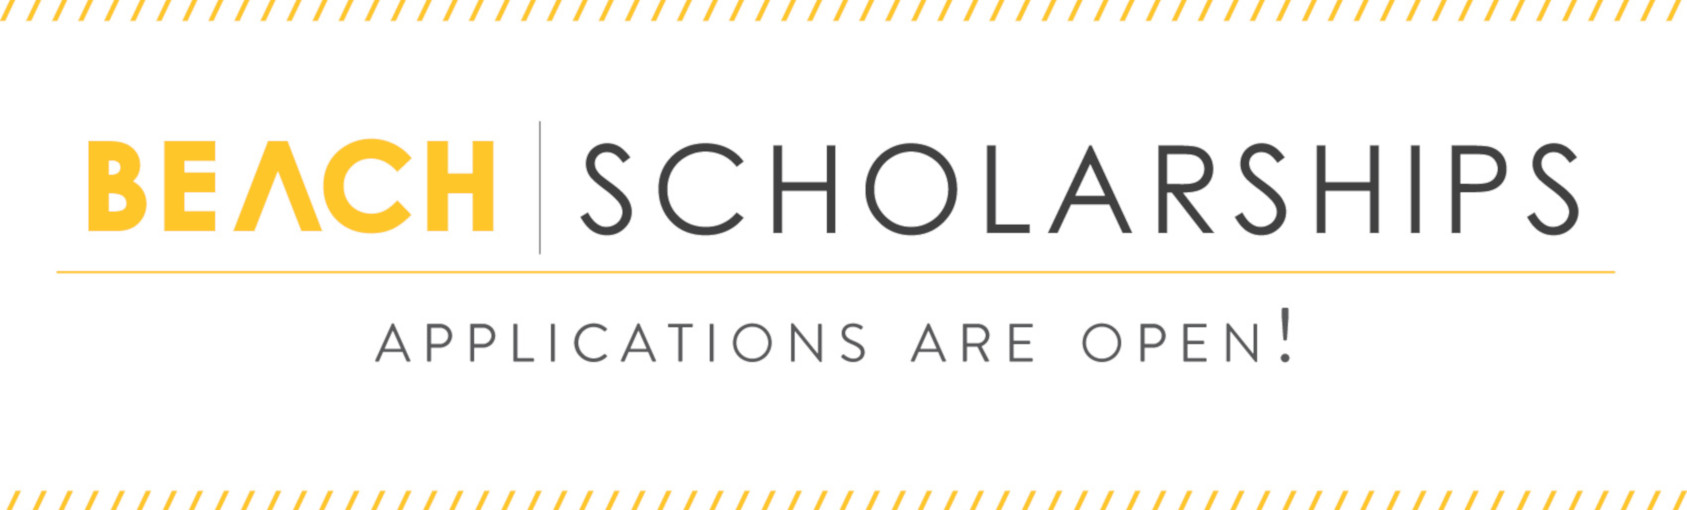 Easily Apply for Beach Scholarships Banner